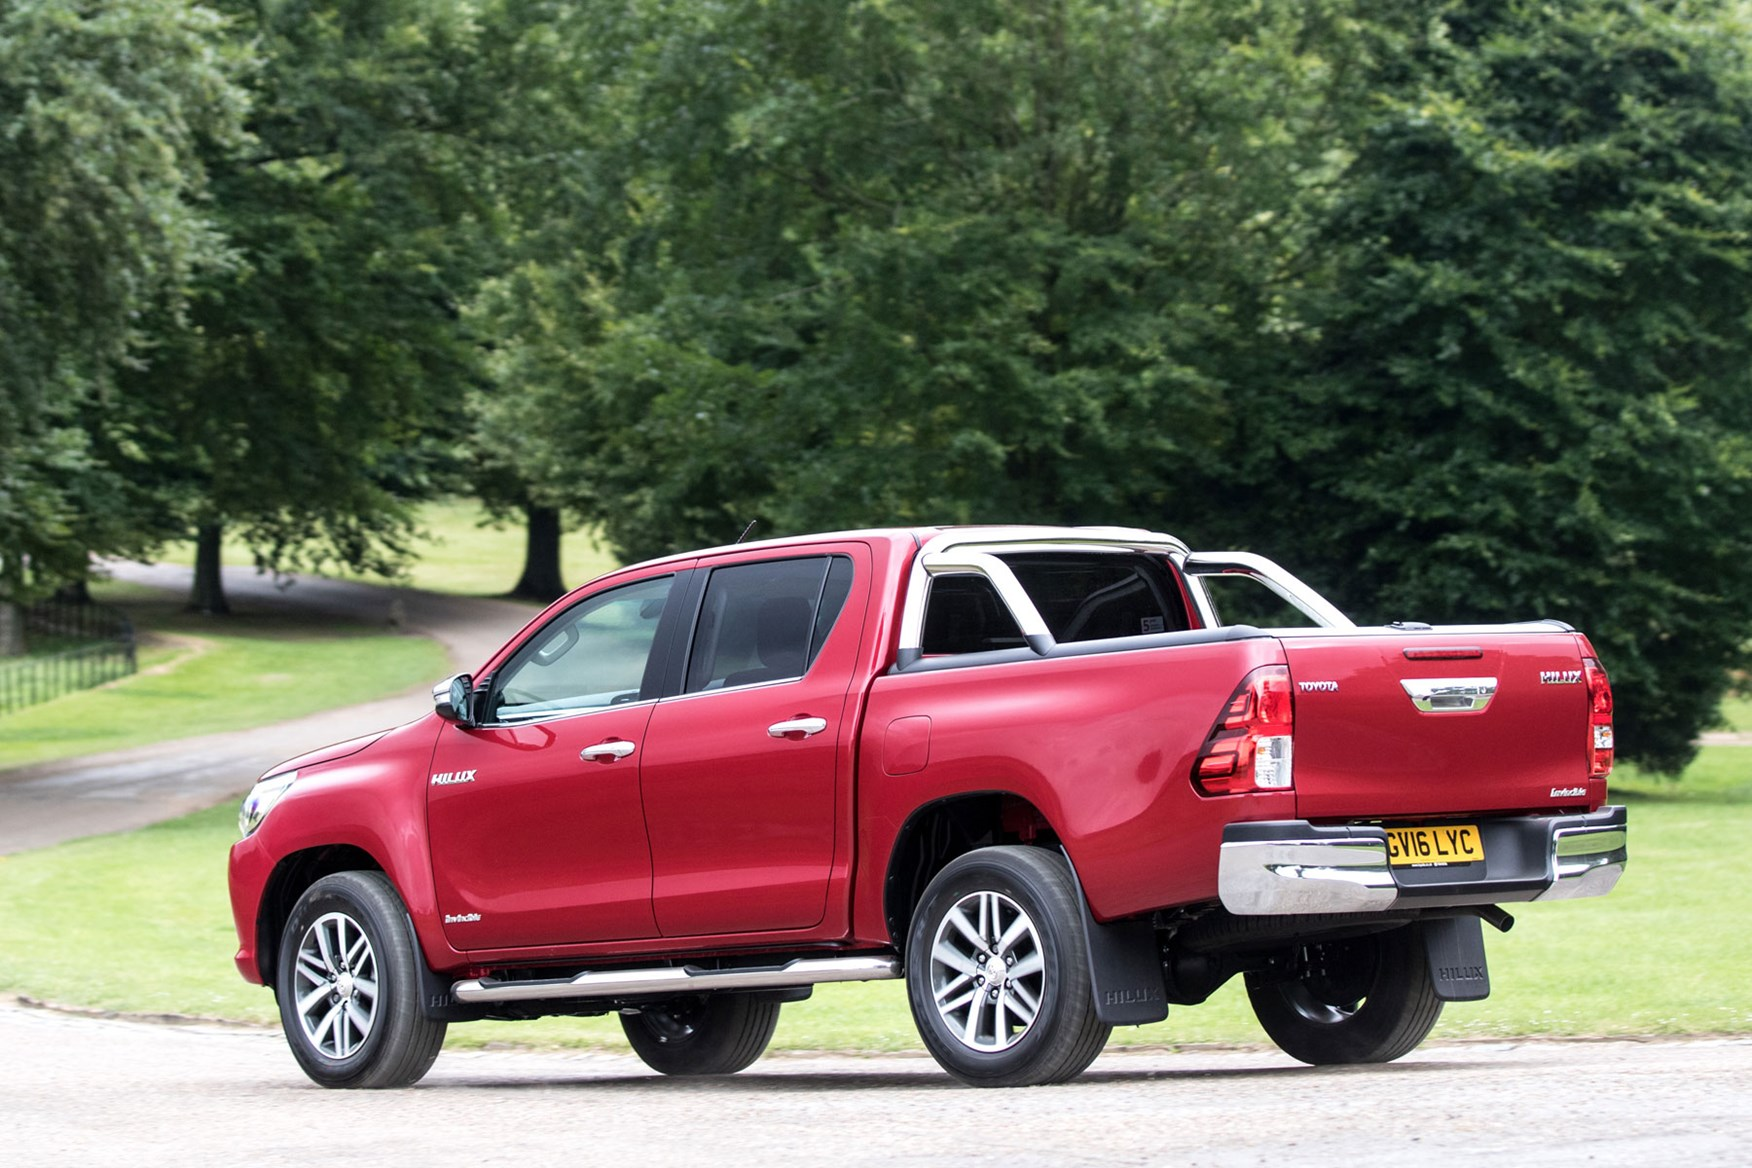 Toyota Hilux review - rear view, driving, red, Invincible